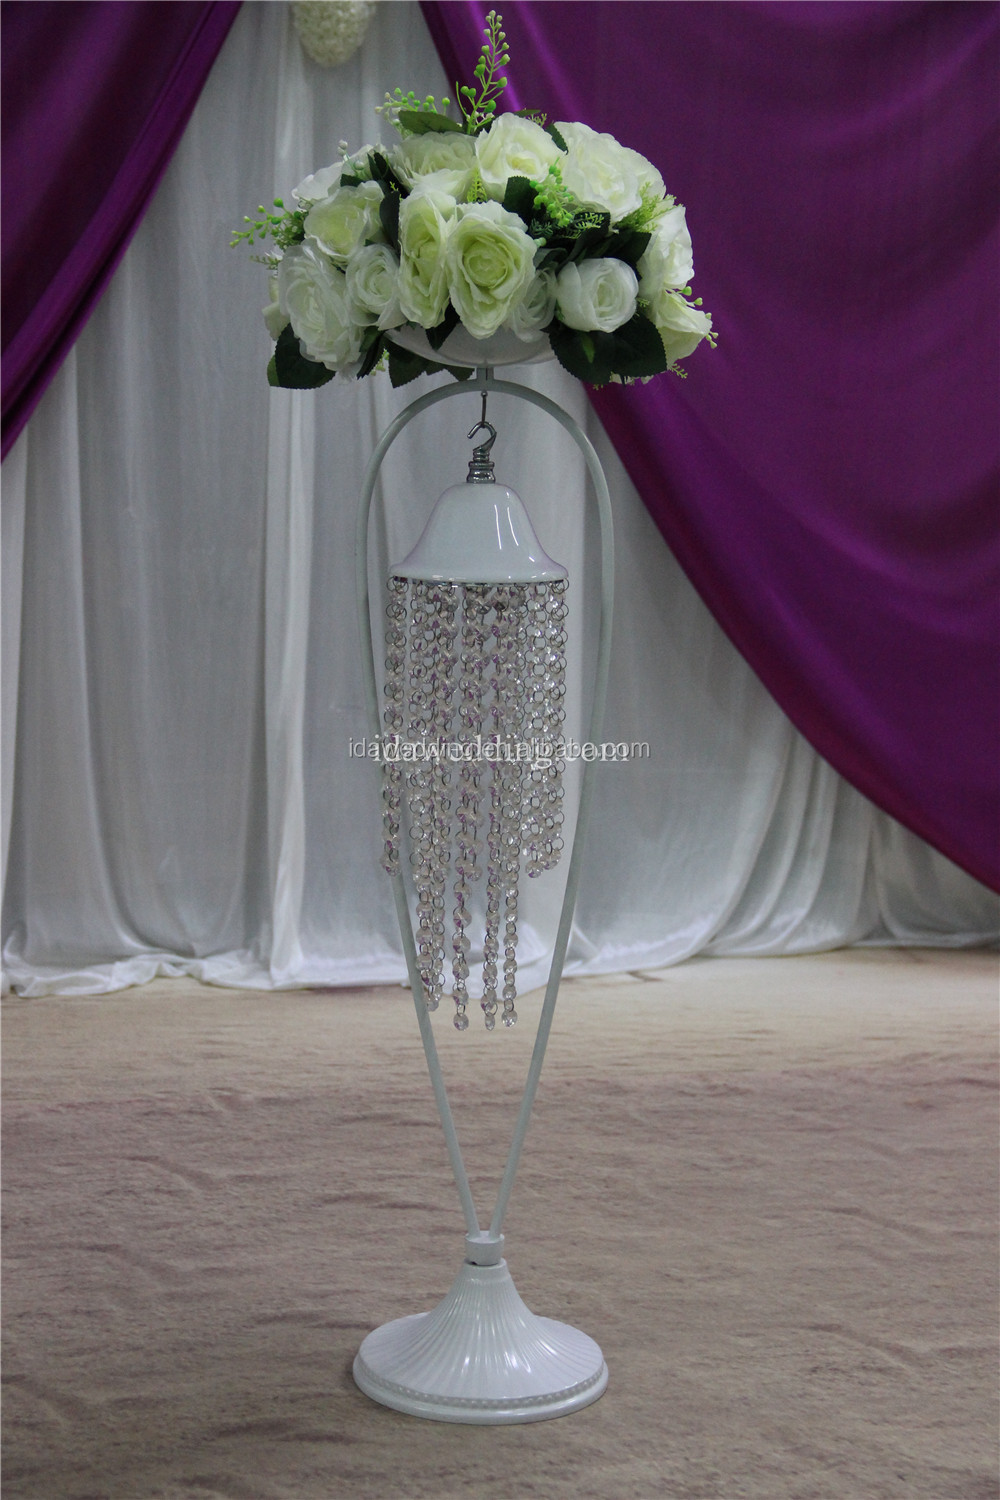 Decorate flower vase column roman column decorate flower vase decorate flower vase column roman column decorate flower vase column roman column suppliers and manufacturers at alibaba reviewsmspy